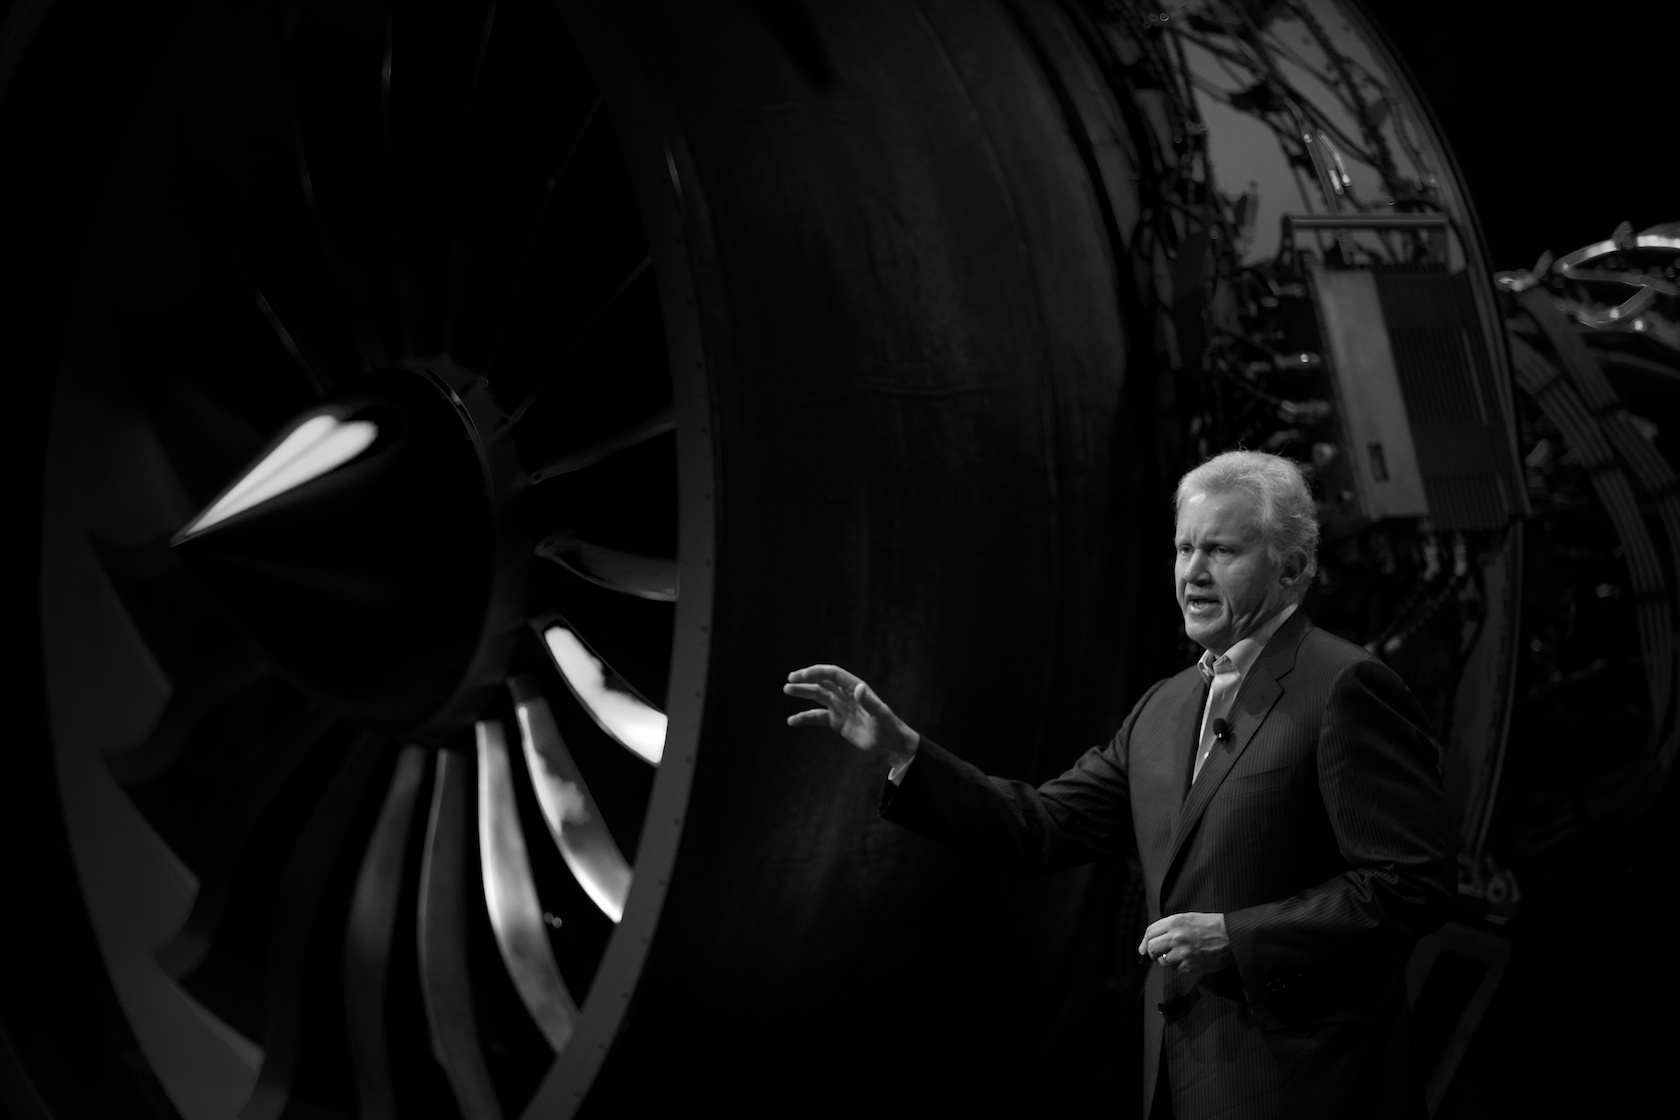 Jeff Immelt, Former CEO of General Electric